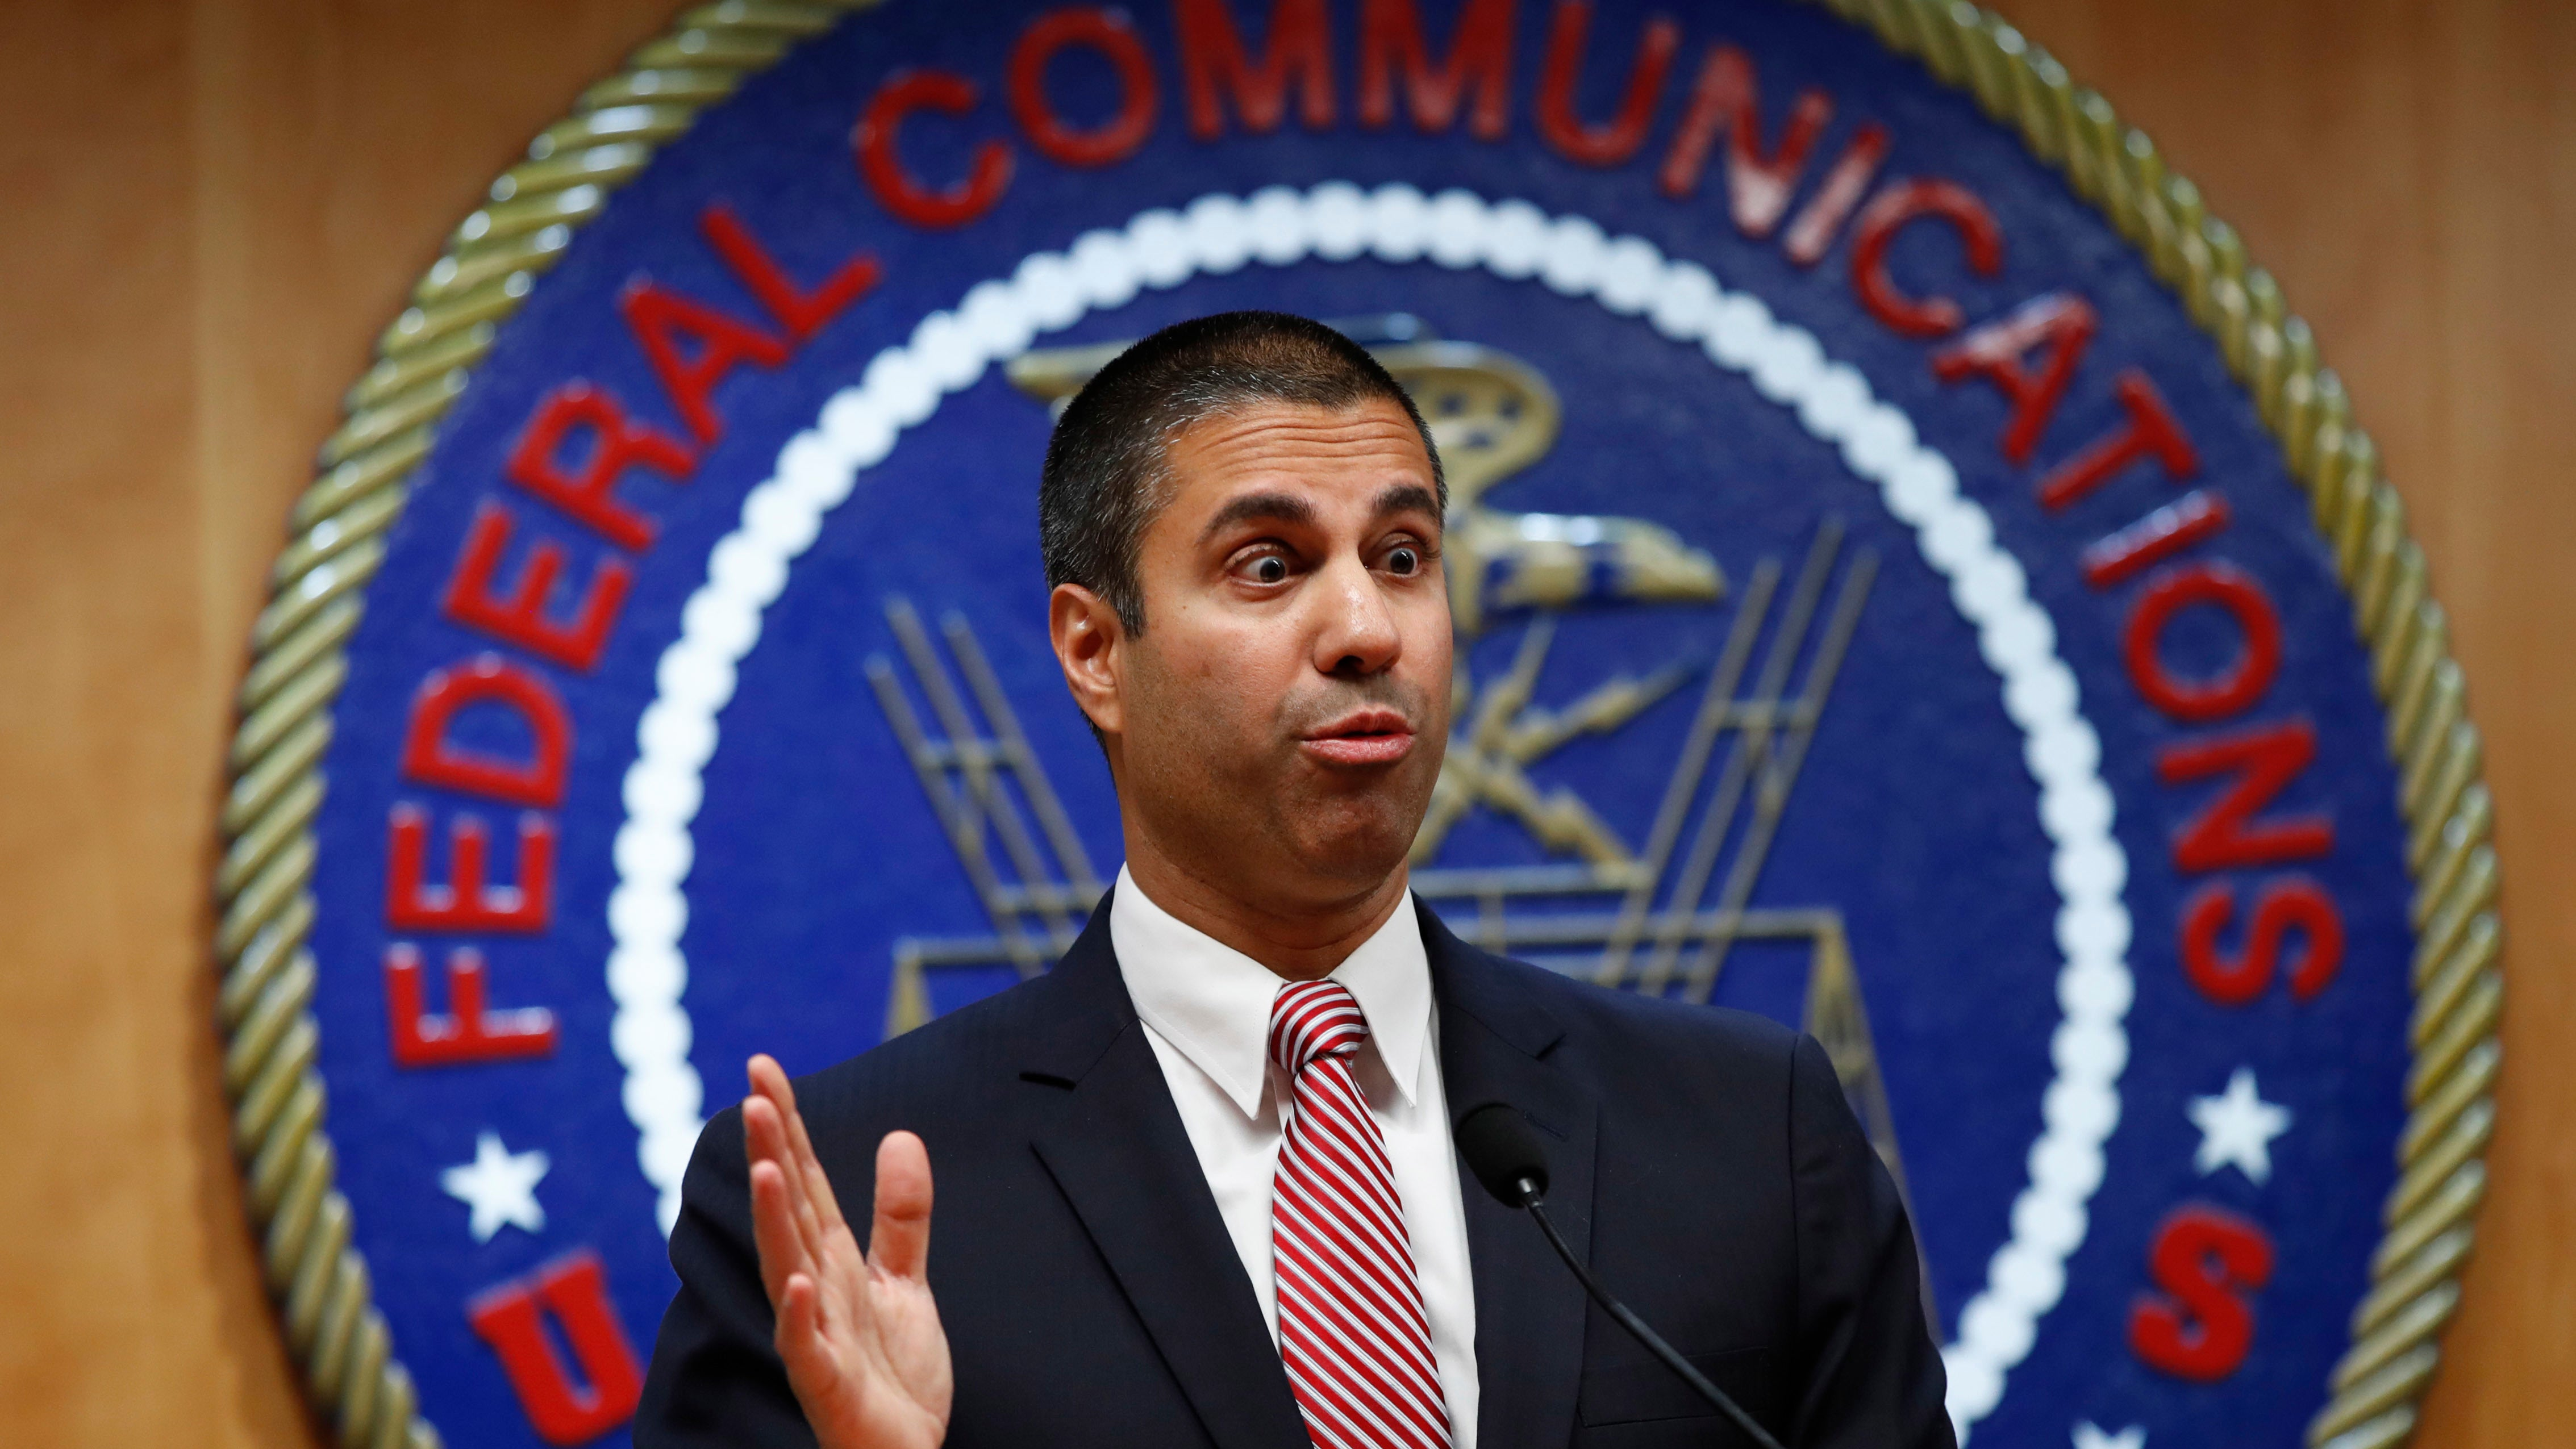 The FCC's Order Killing Net Neutrality Hasn't Actually Gone Into Effect Yet